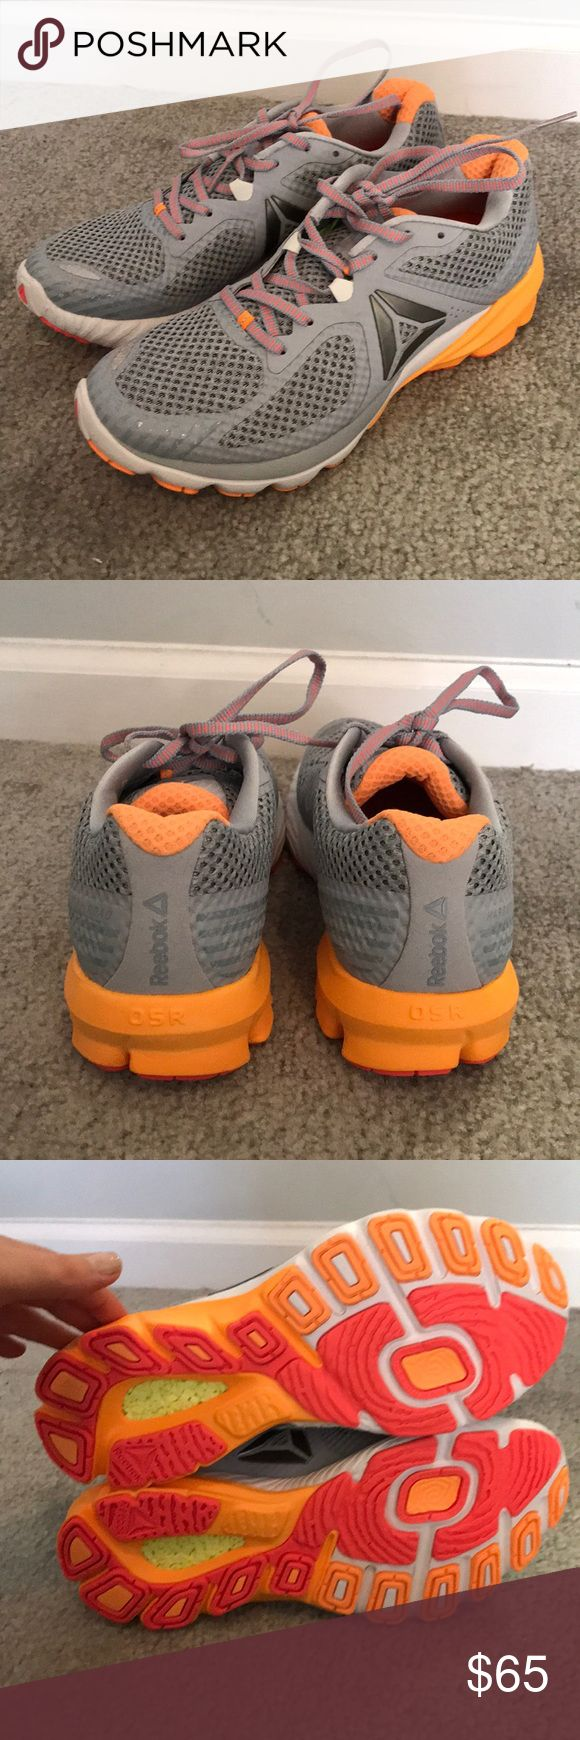 Reebok Women's Running Shoes (Harmony Road) Brand new, never worn. Reebok Harmony Road Running Shoe. Great for distance running. Reebok Shoes Athletic Shoes